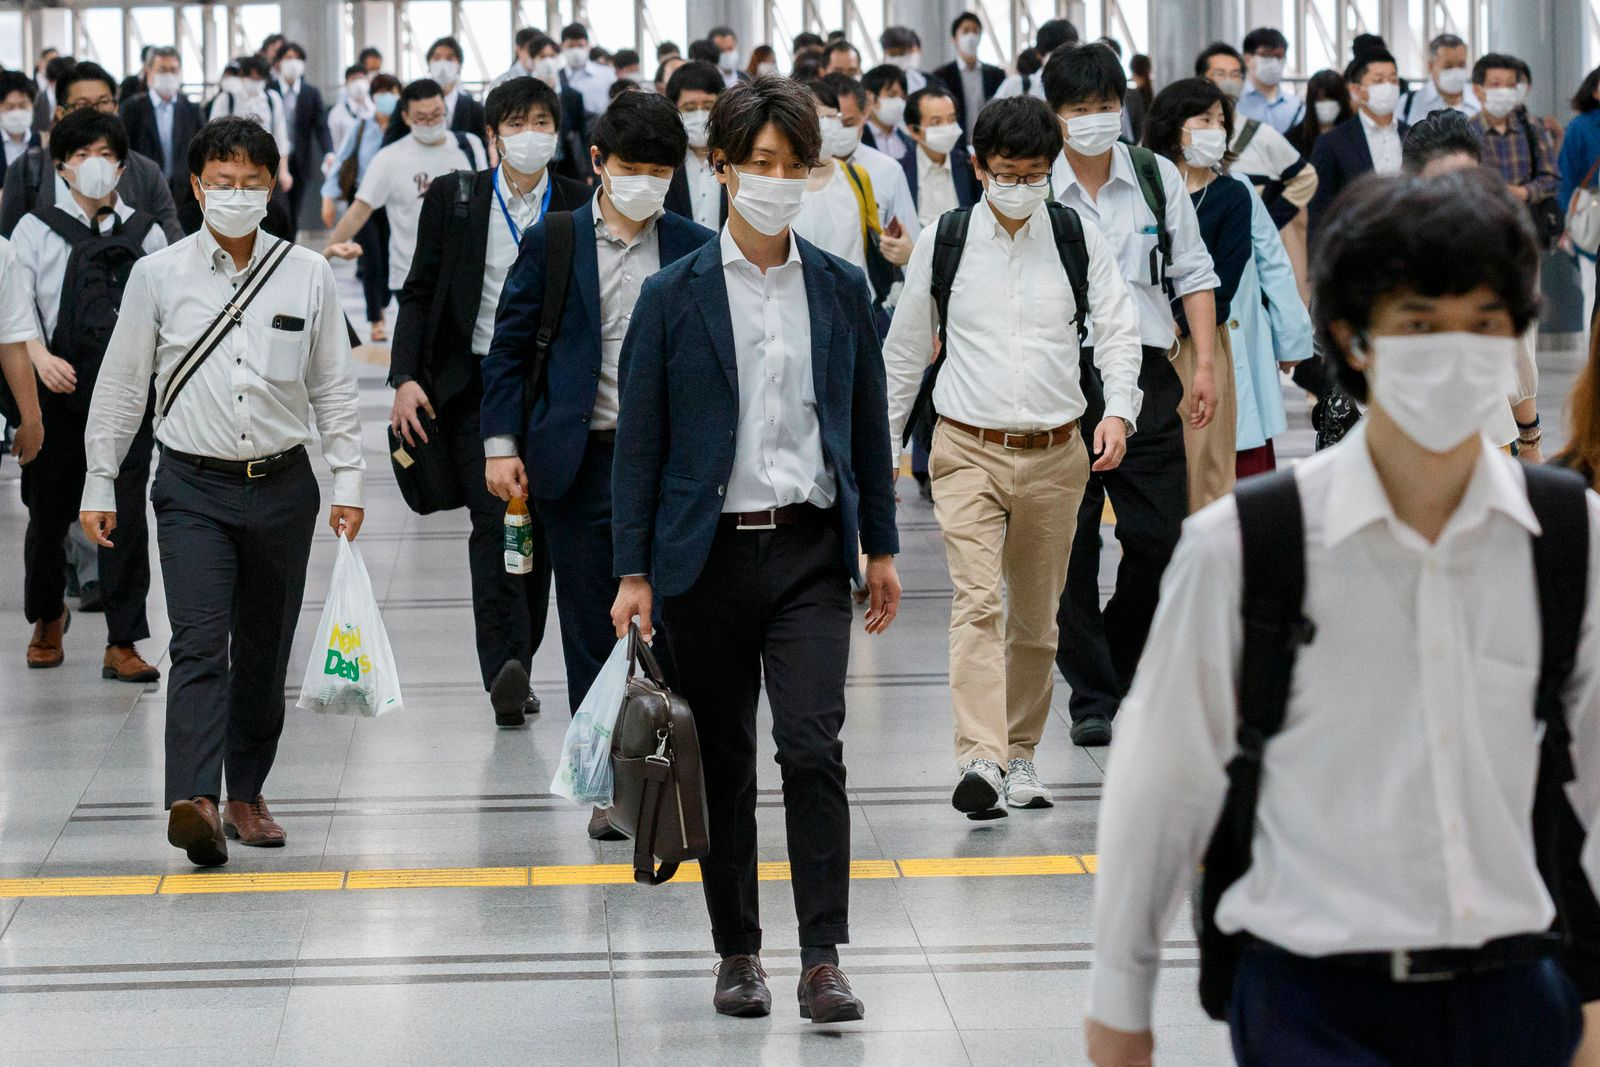 May 26, 2020, Tokyo, Japan: Commuters wearing face masks walk from Shinagawa Station to their offices, a day after Prim